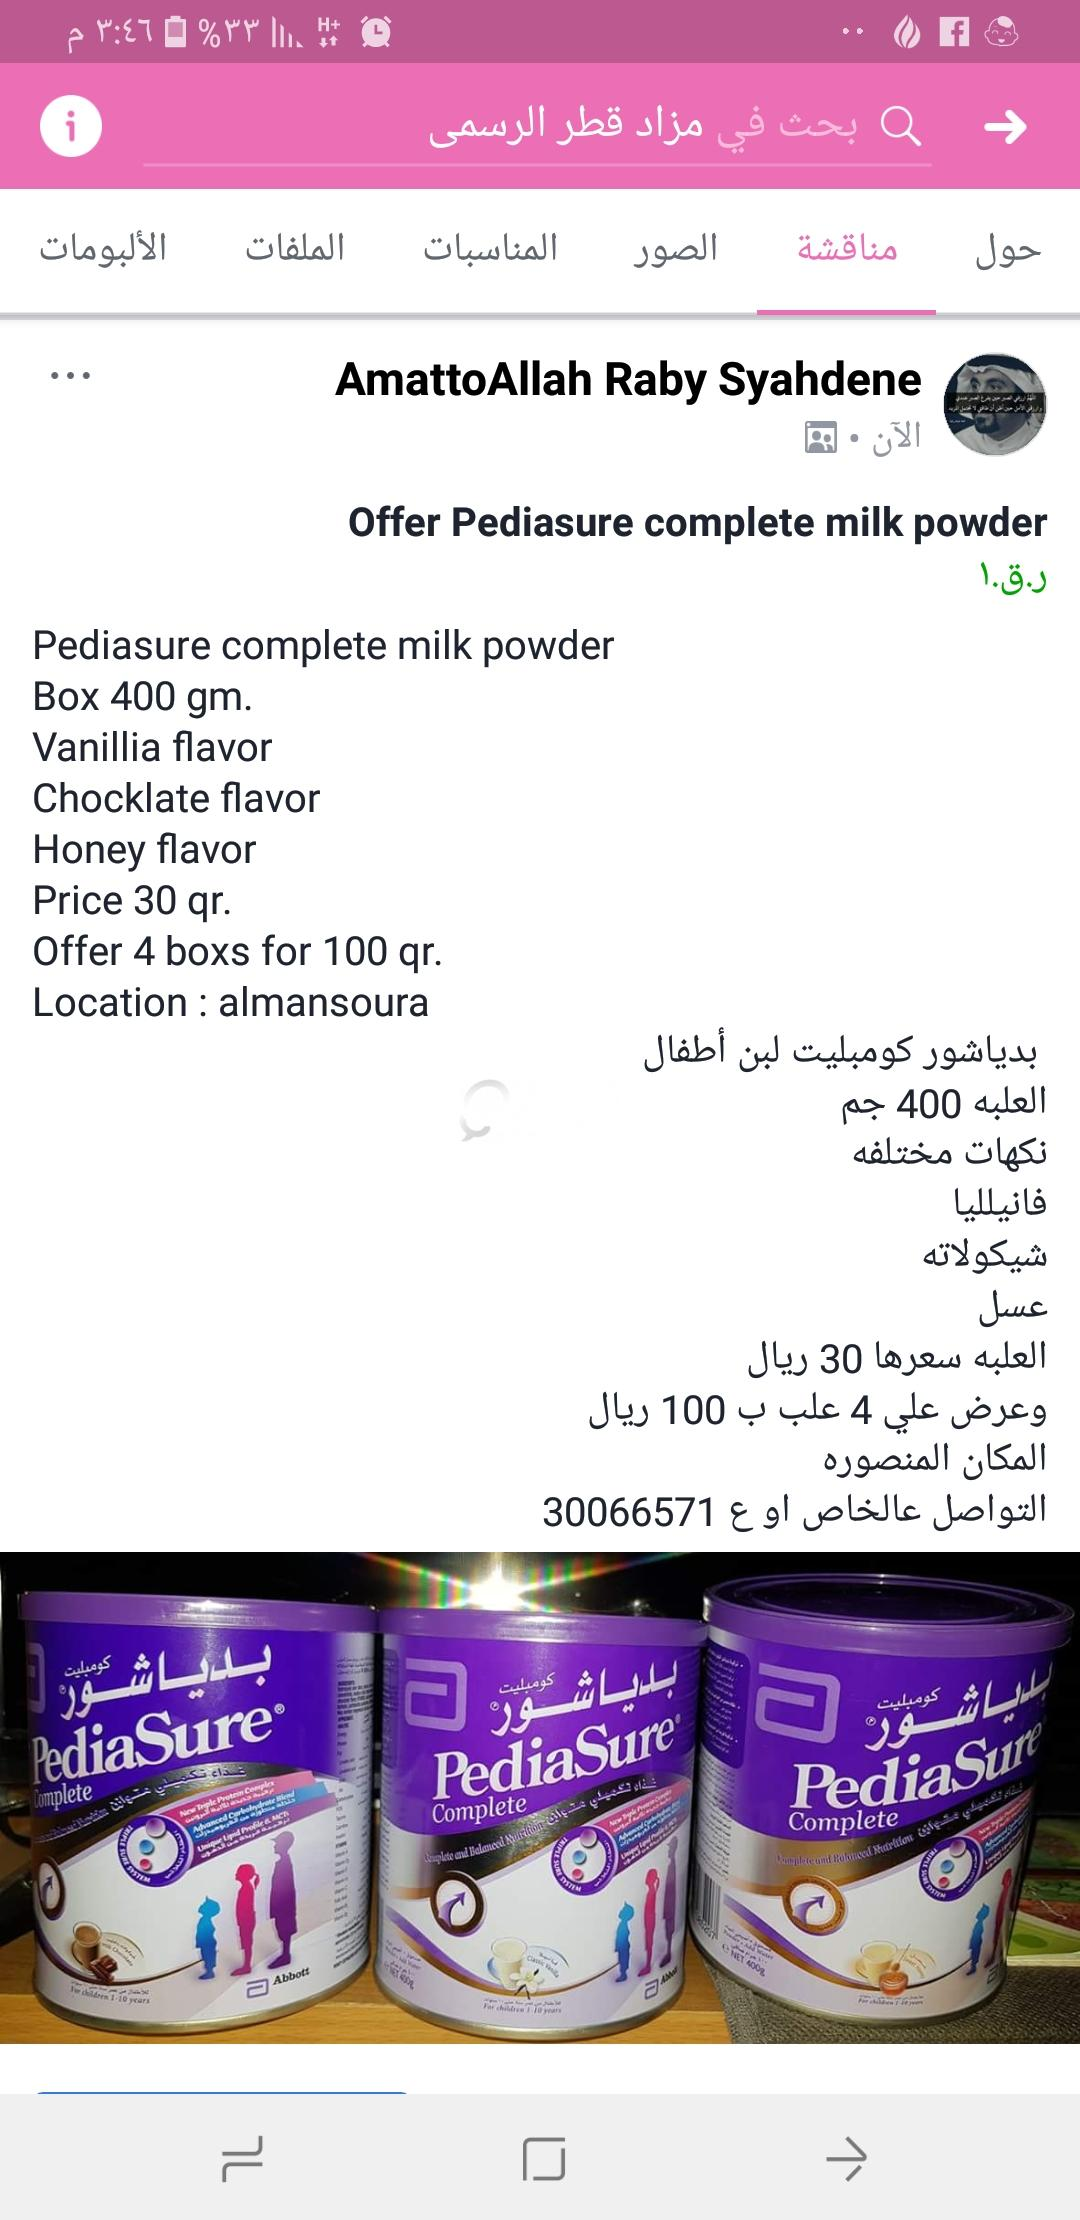 big offer fo pediasure complete milk